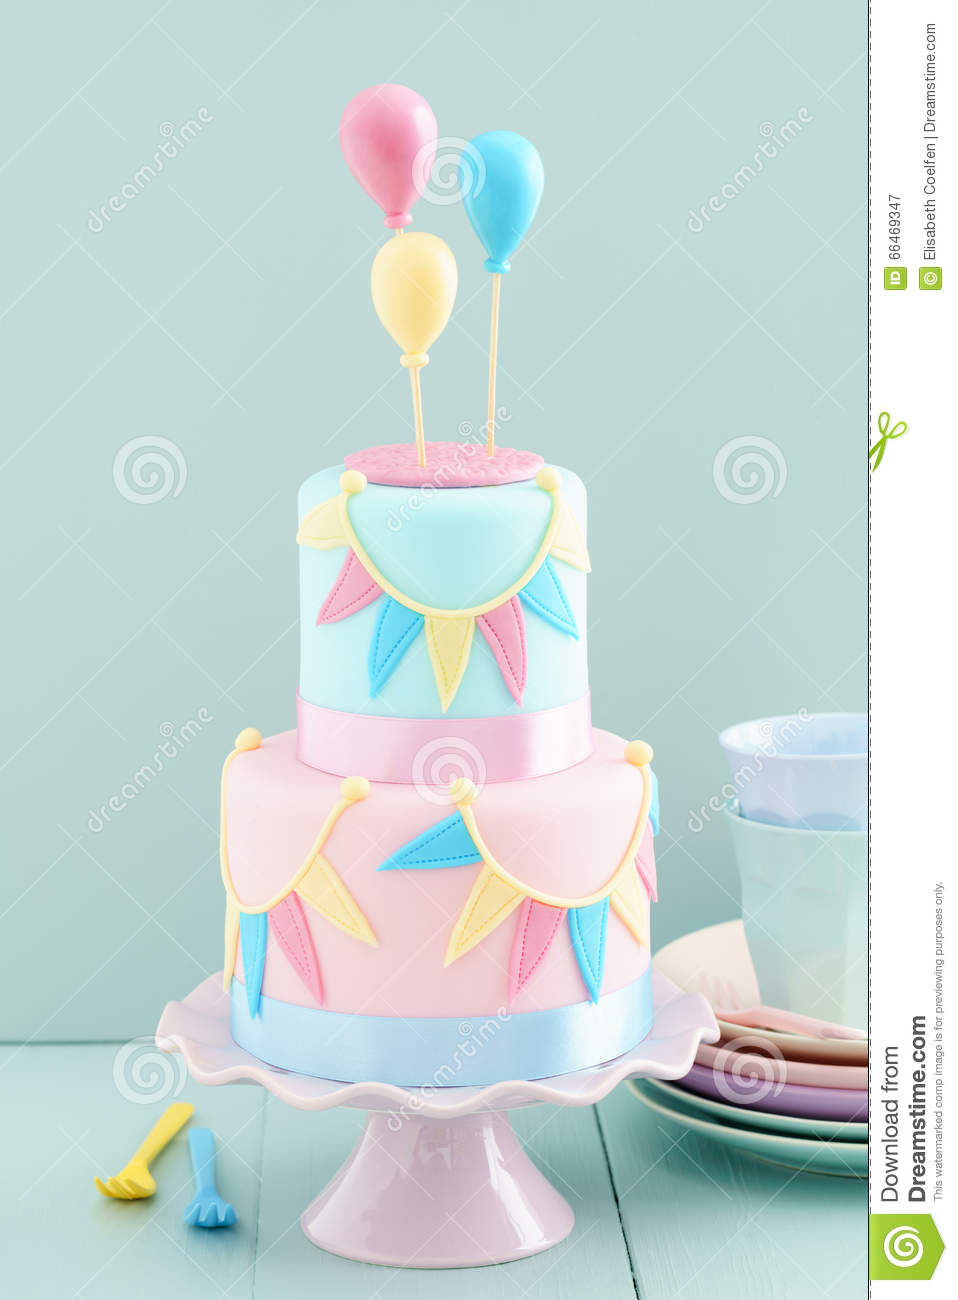 birthday cake and balloons birthday cake with balloons stock photo image 66469347 1729